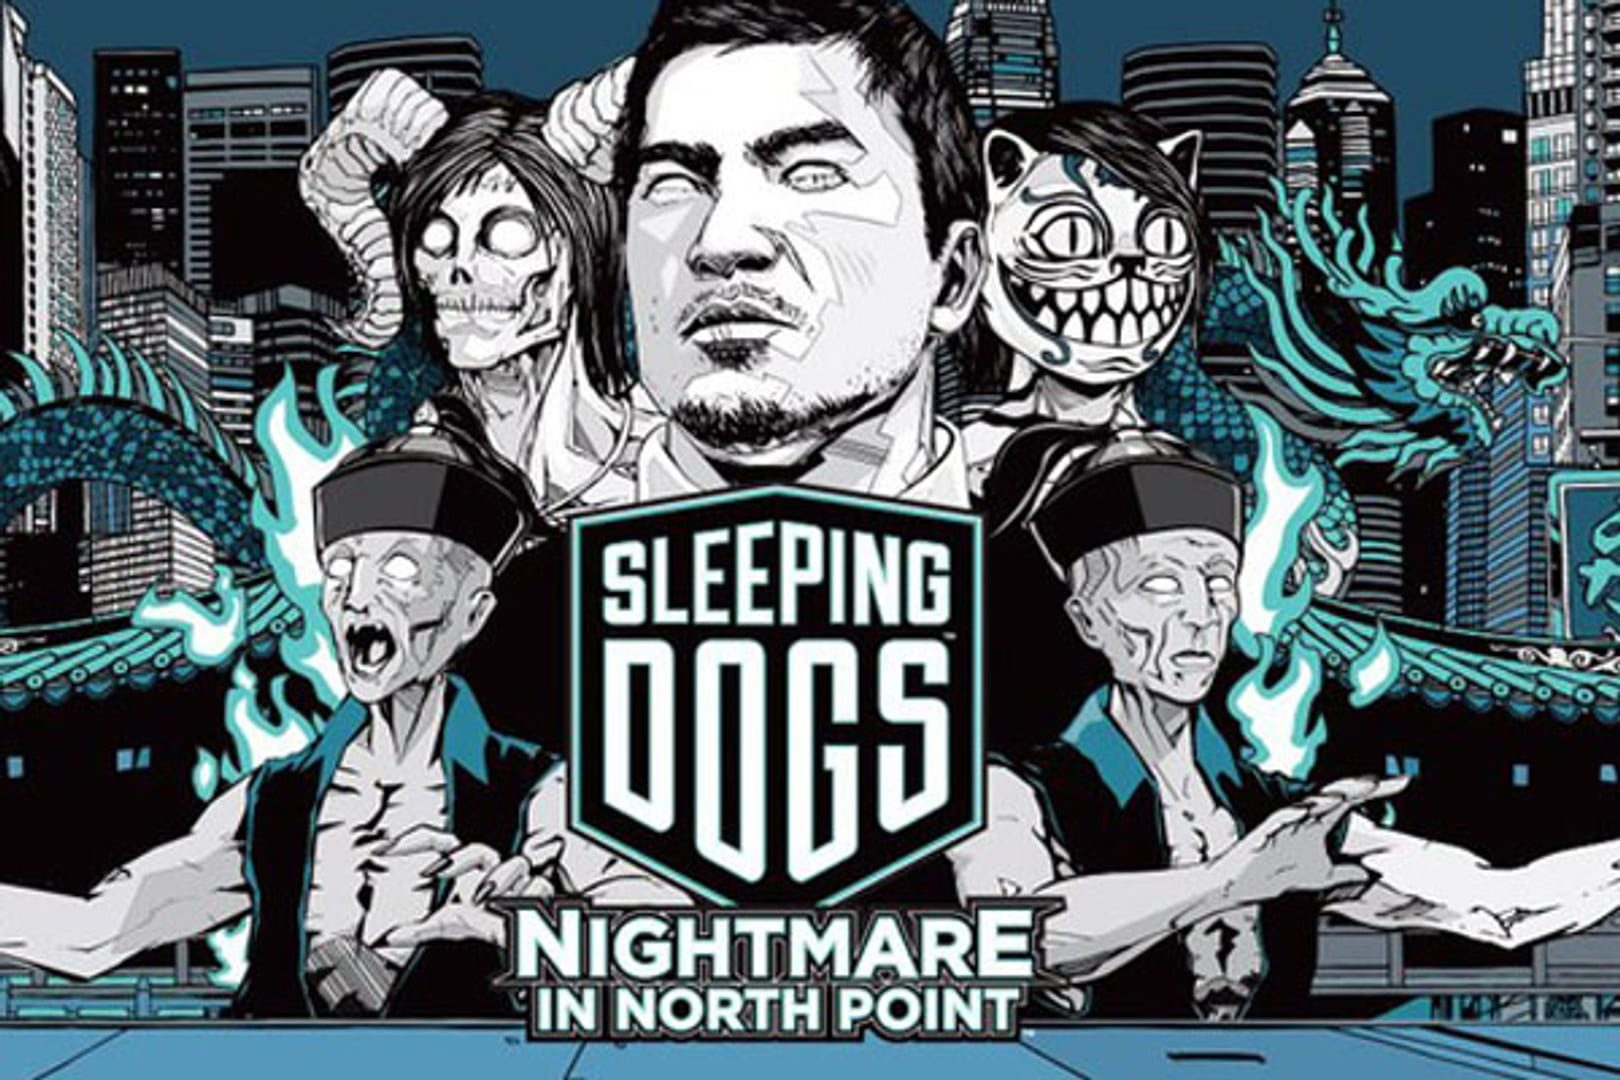 buy Sleeping Dogs: Nightmare in North Point cd key for all platform